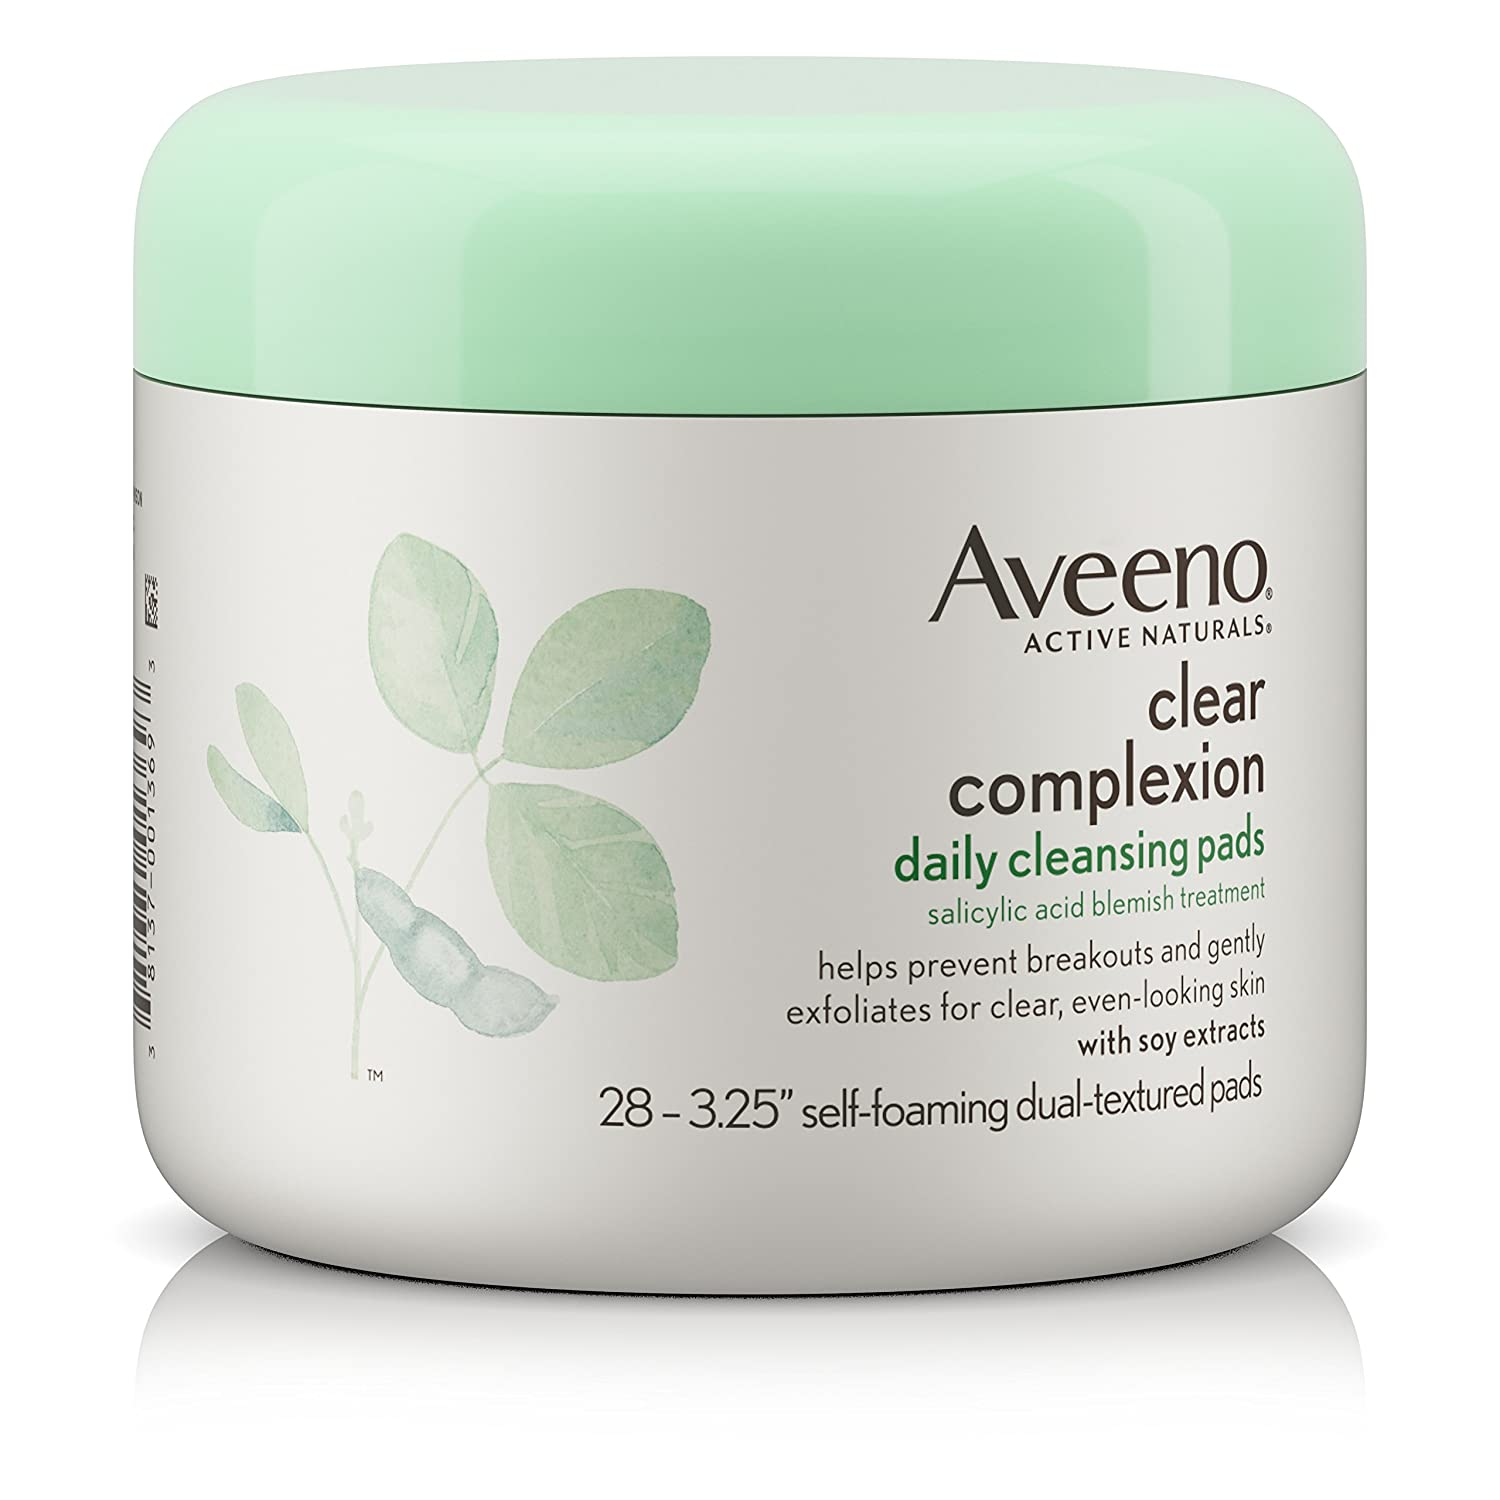 Aveeno Clear Complexion Daily Facial Cleansing Pads With Salicylic Acid Blemish Treatment, 28 Count J&J810838